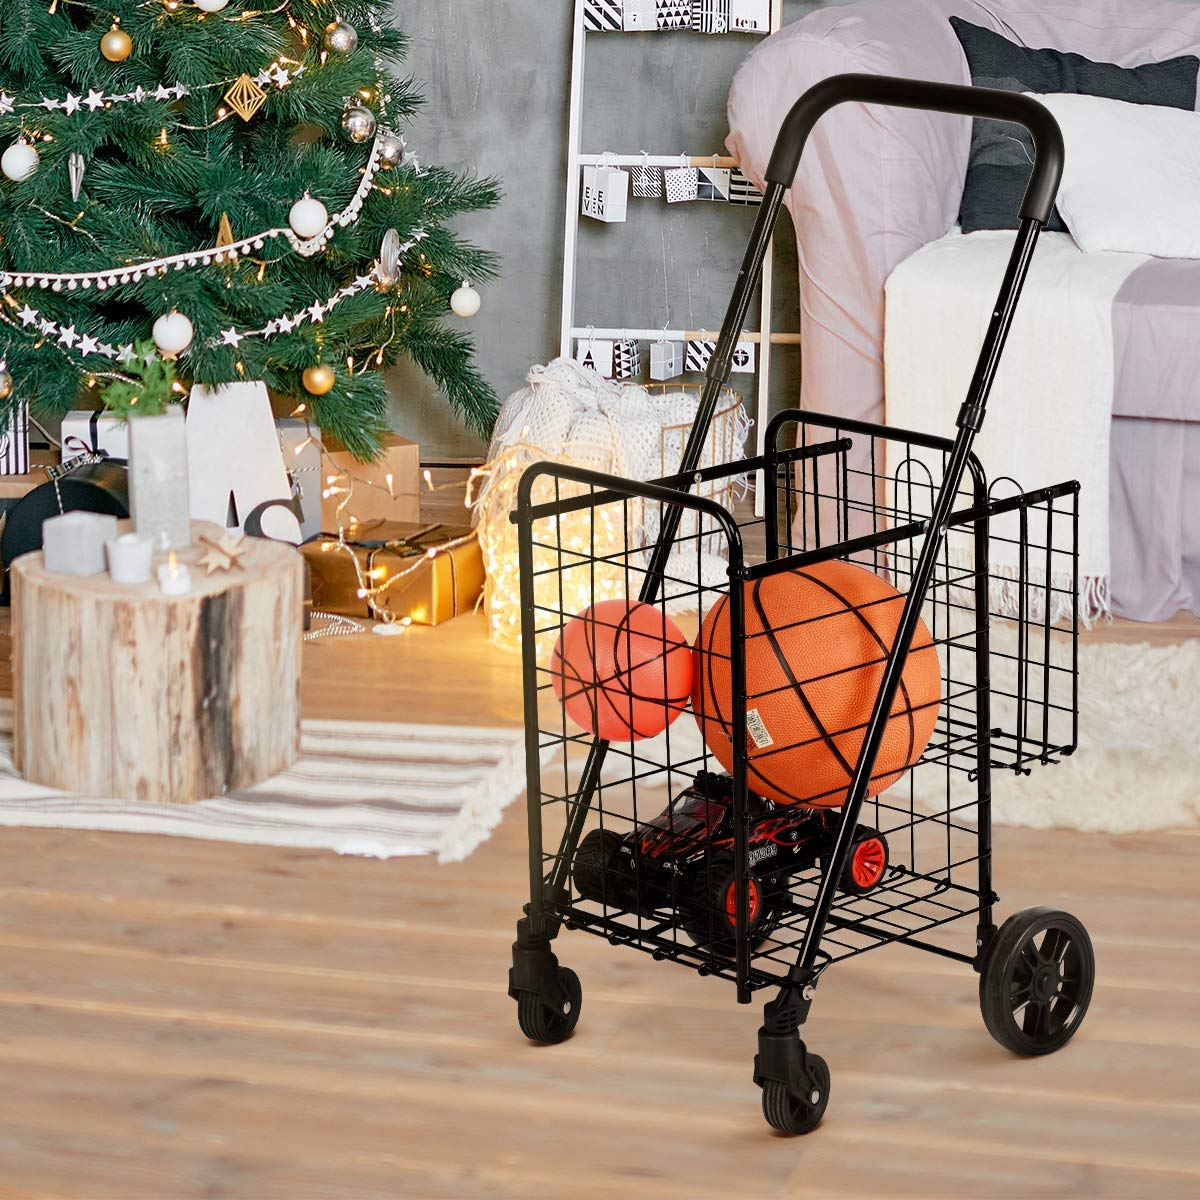 Goplus Folding Shopping Cart Double Basket Perfect for Grocery Laundry Book Luggage Travel with Swivel Wheels Silver